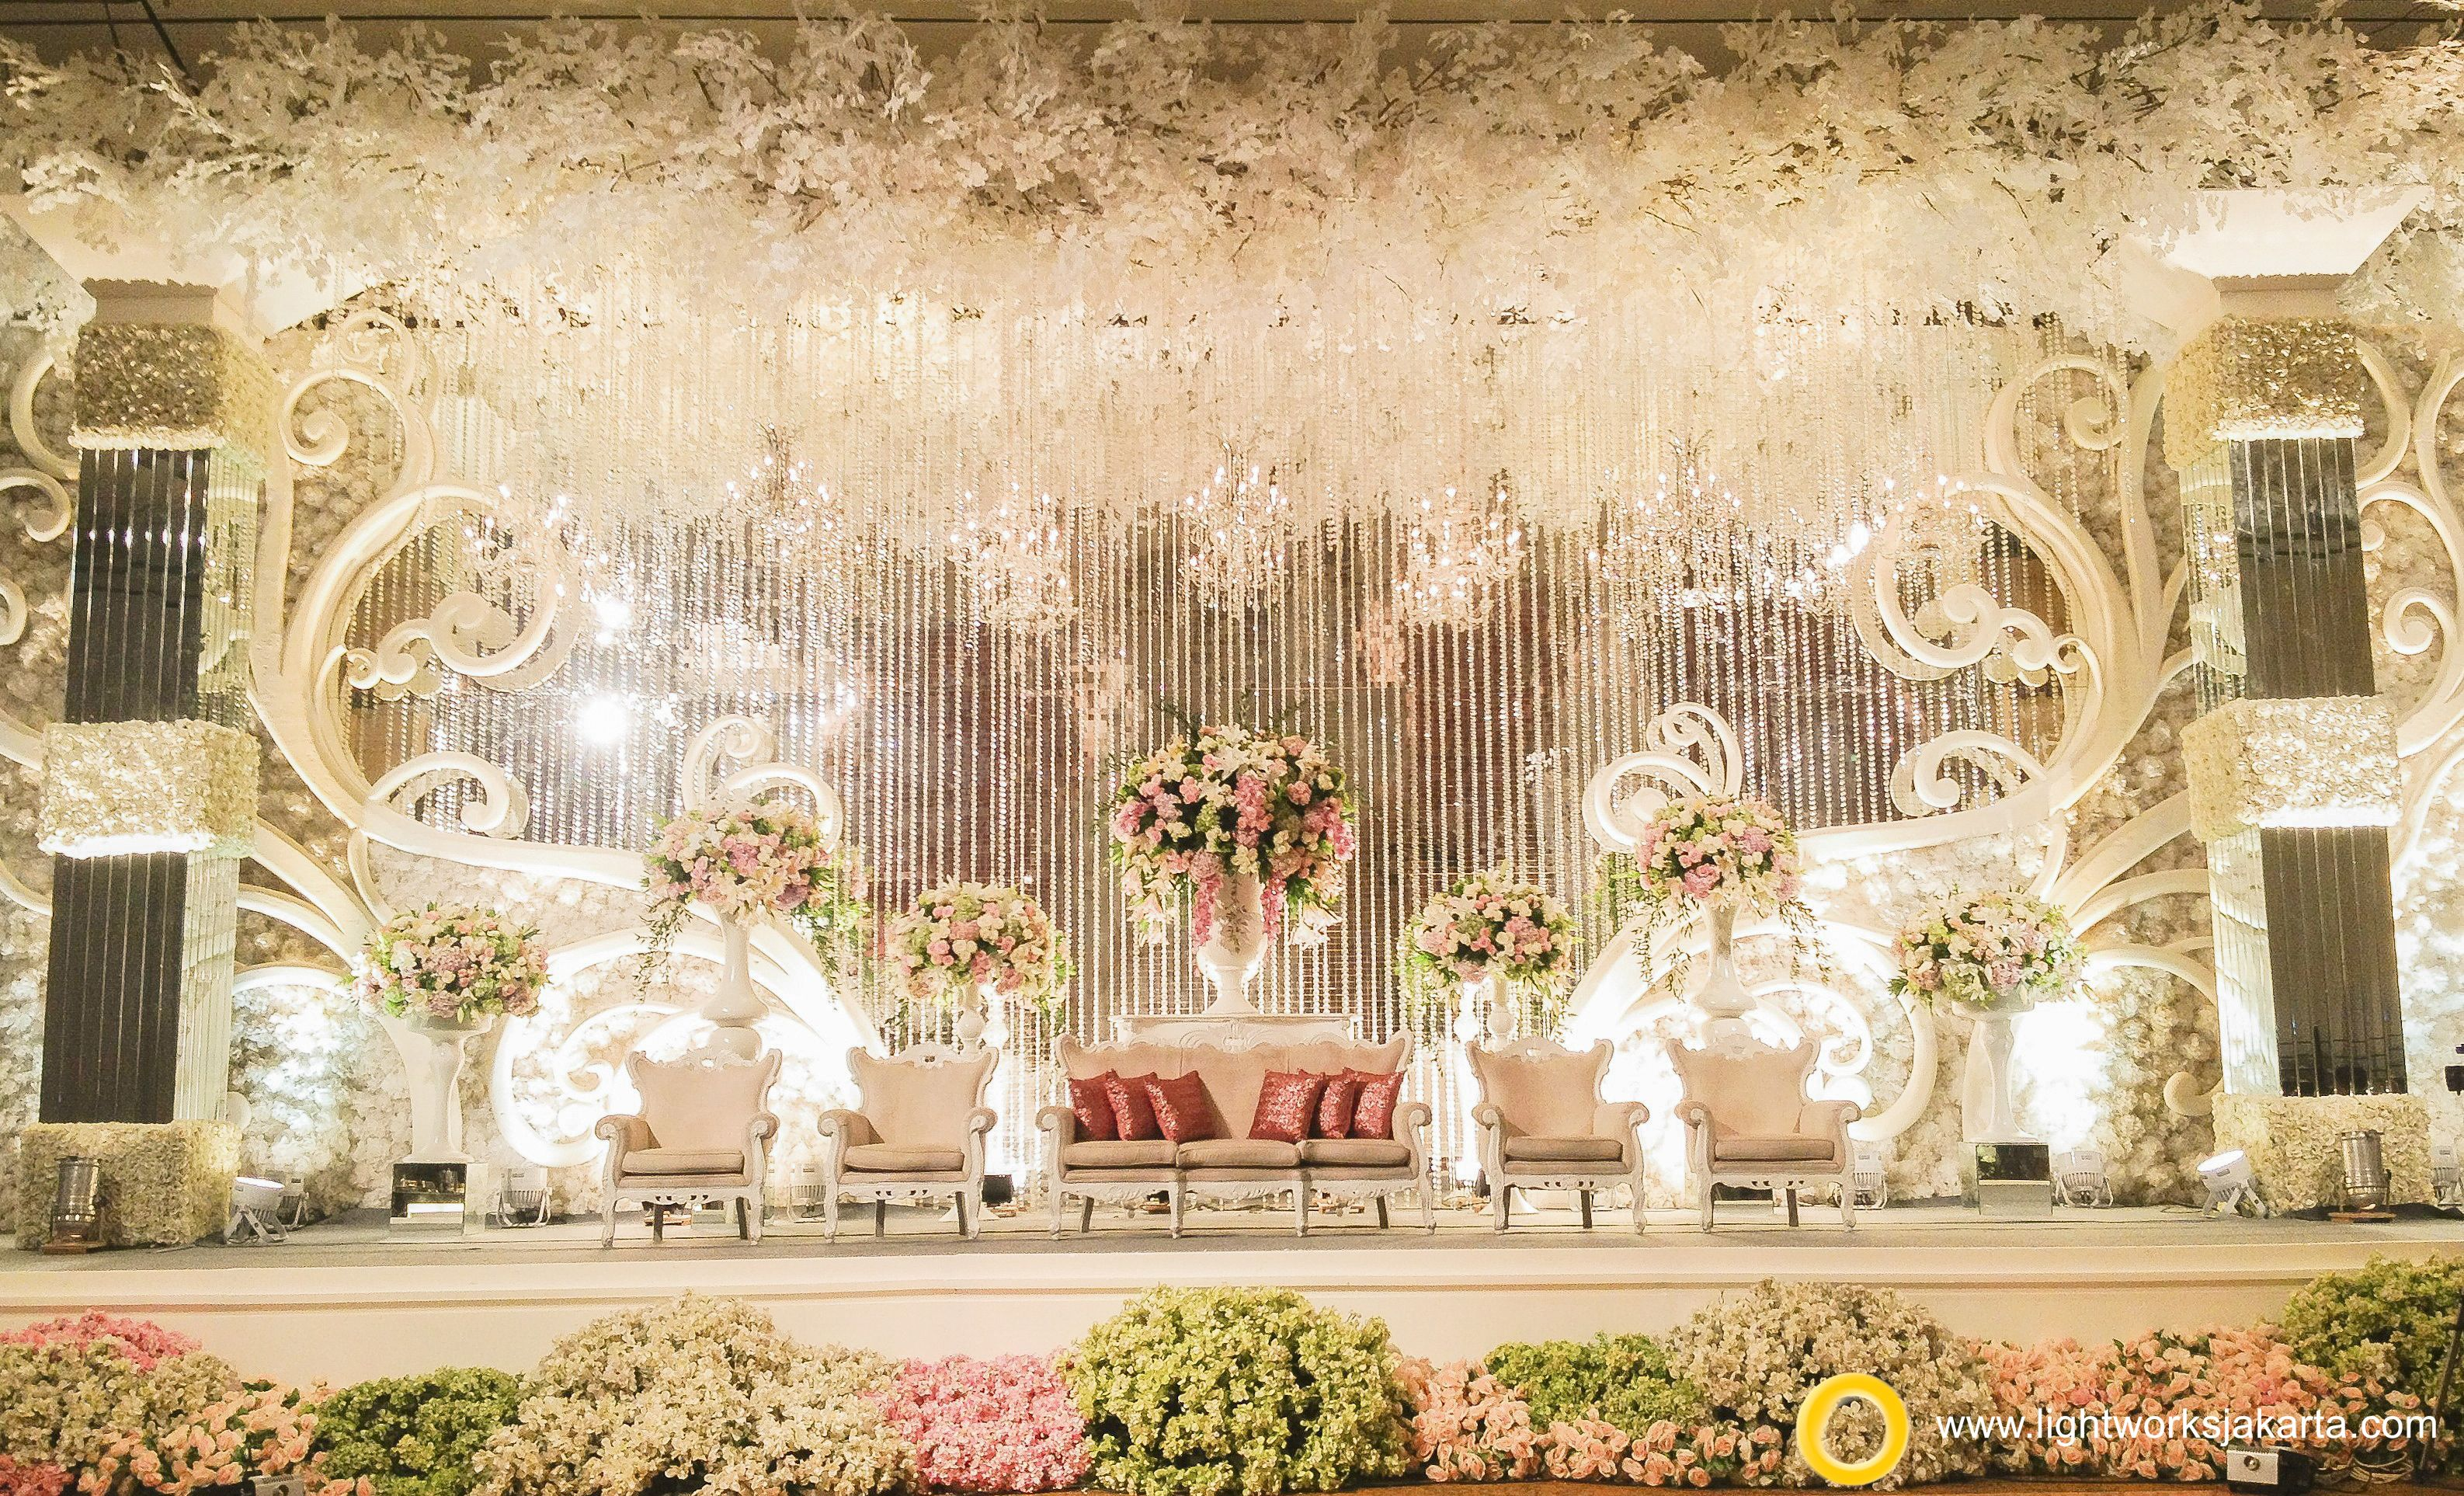 Elbert and cindys wedding reception venue at ritz carlton organized by flair wo wedding entertainment by andew lee entertainment photography by axioo decoration by lotus design lighting by lightworks junglespirit Gallery